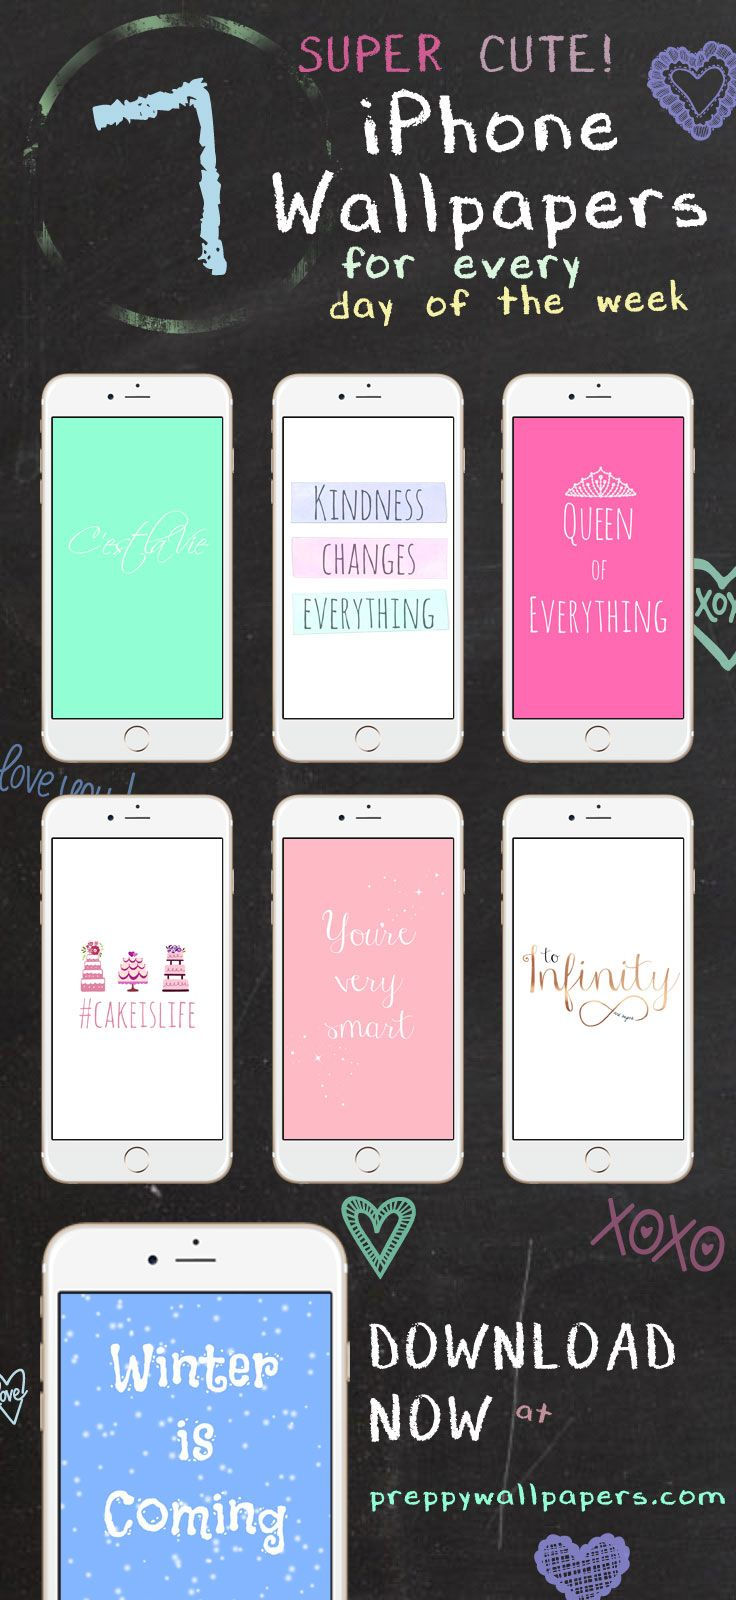 For Free Preppy Original Super Cute Iphone Wallpaper Collection